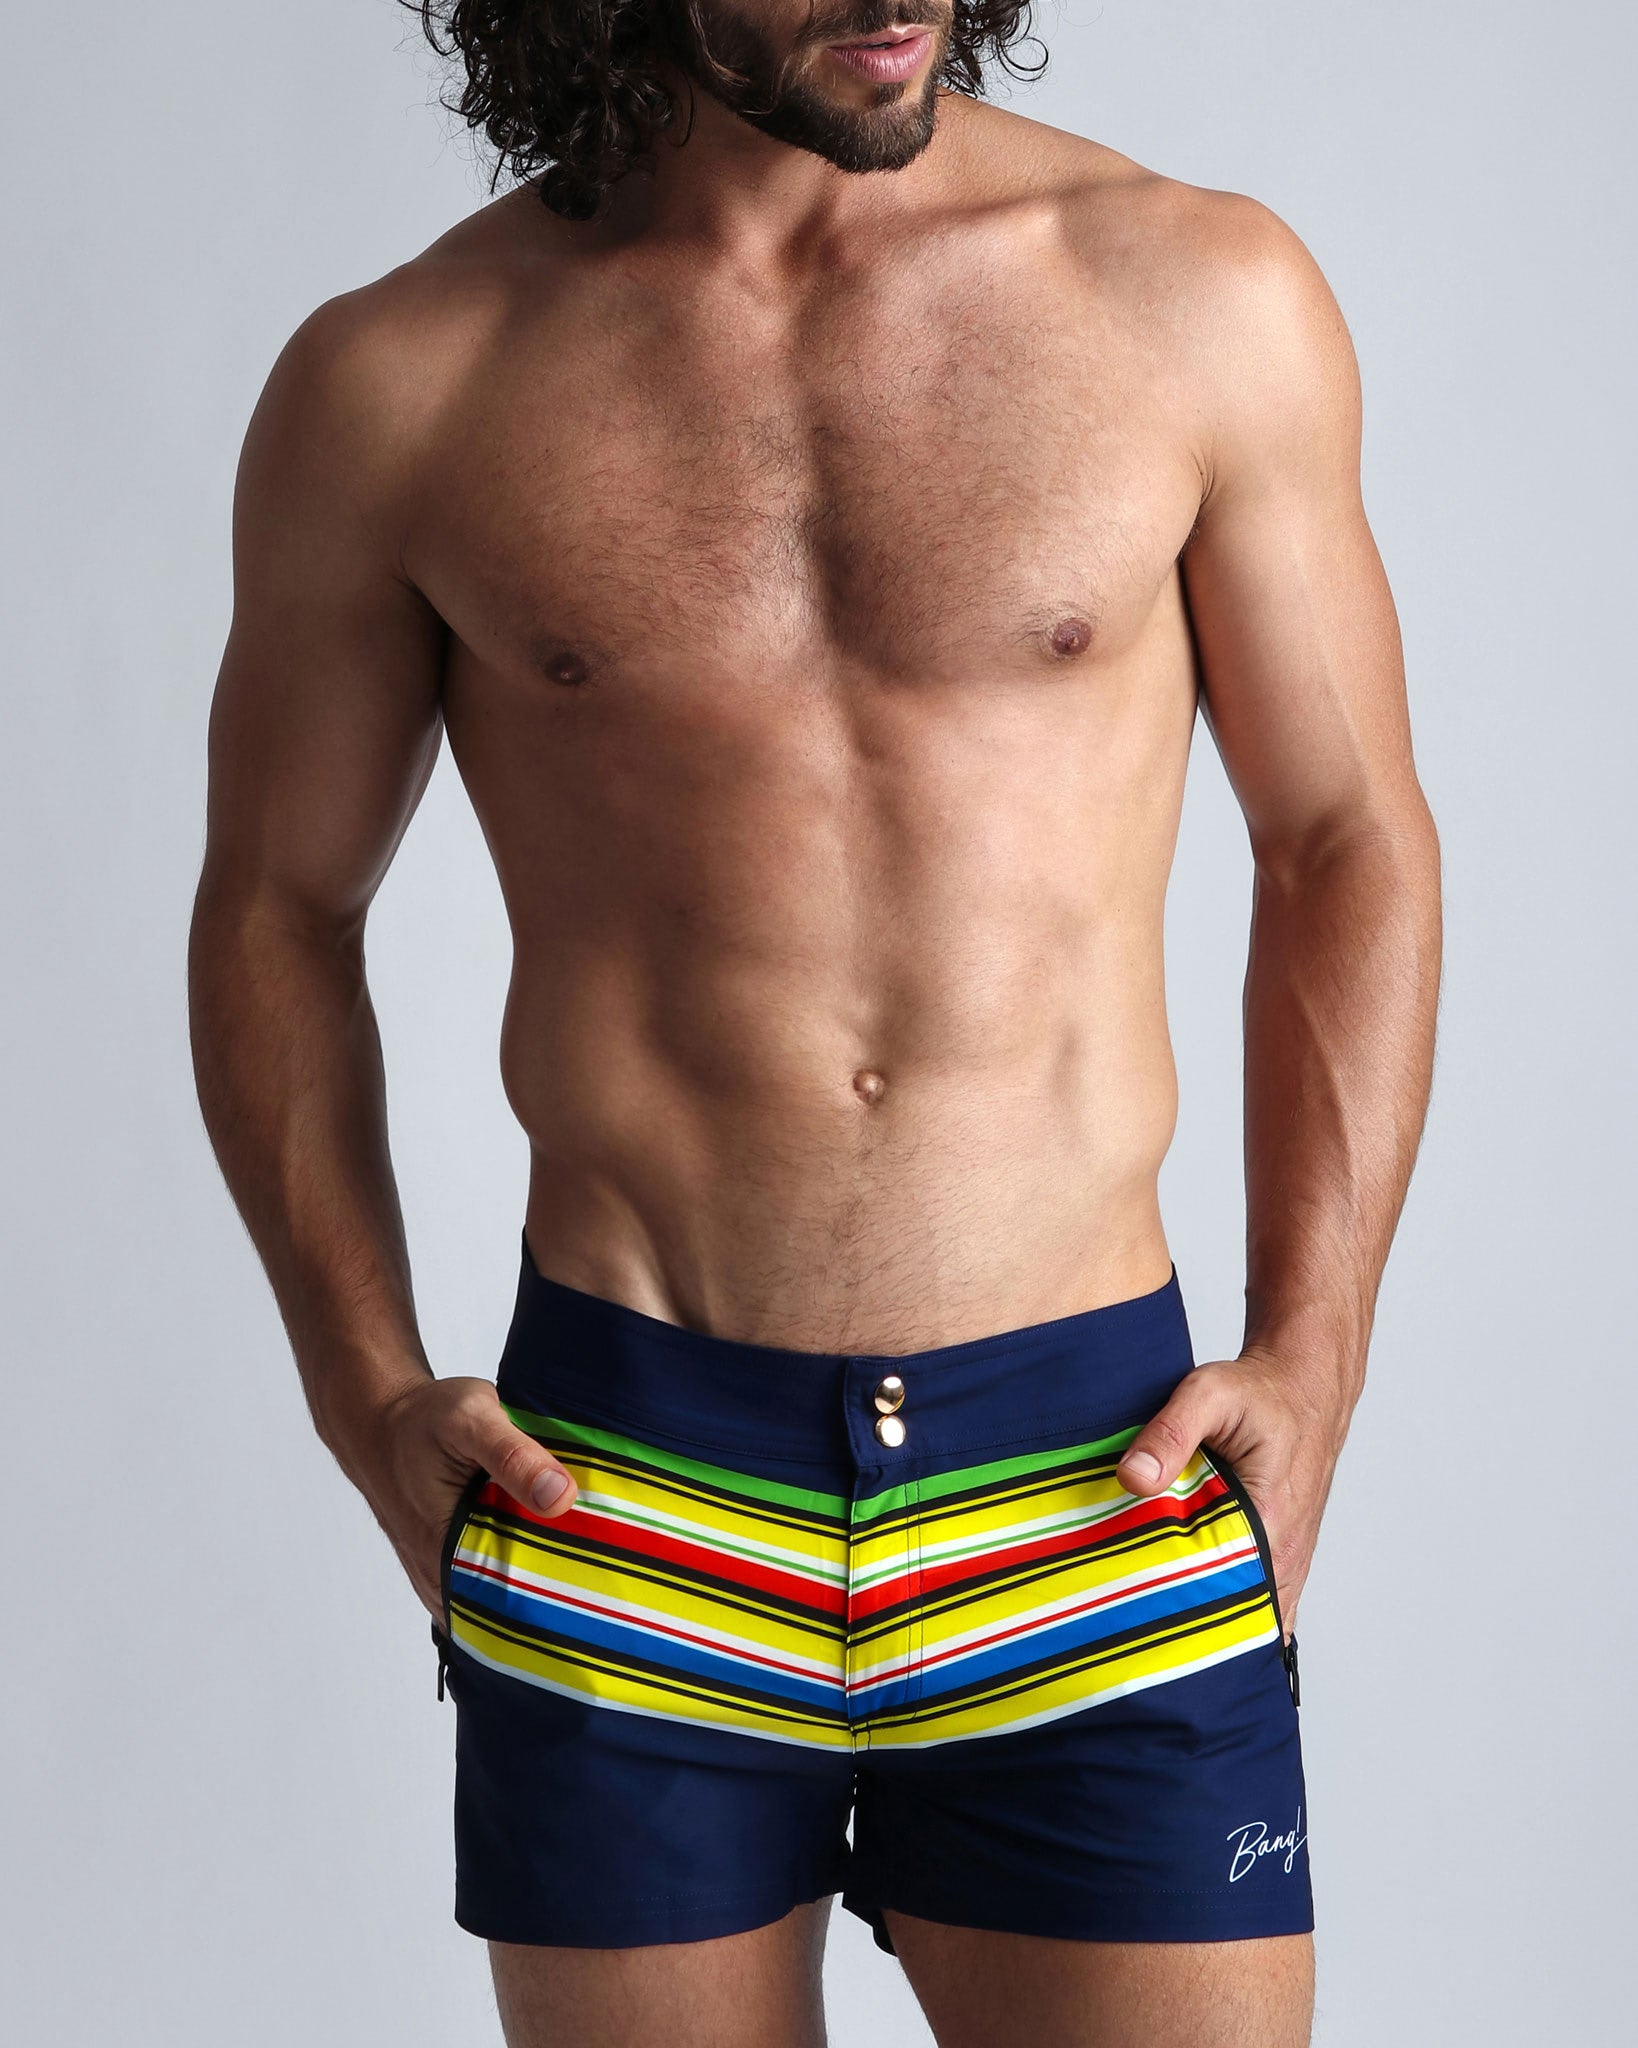 STRIPE'A'POSE DUB Beach Shorts Bang Clothes Men Swimwear Swimsuits